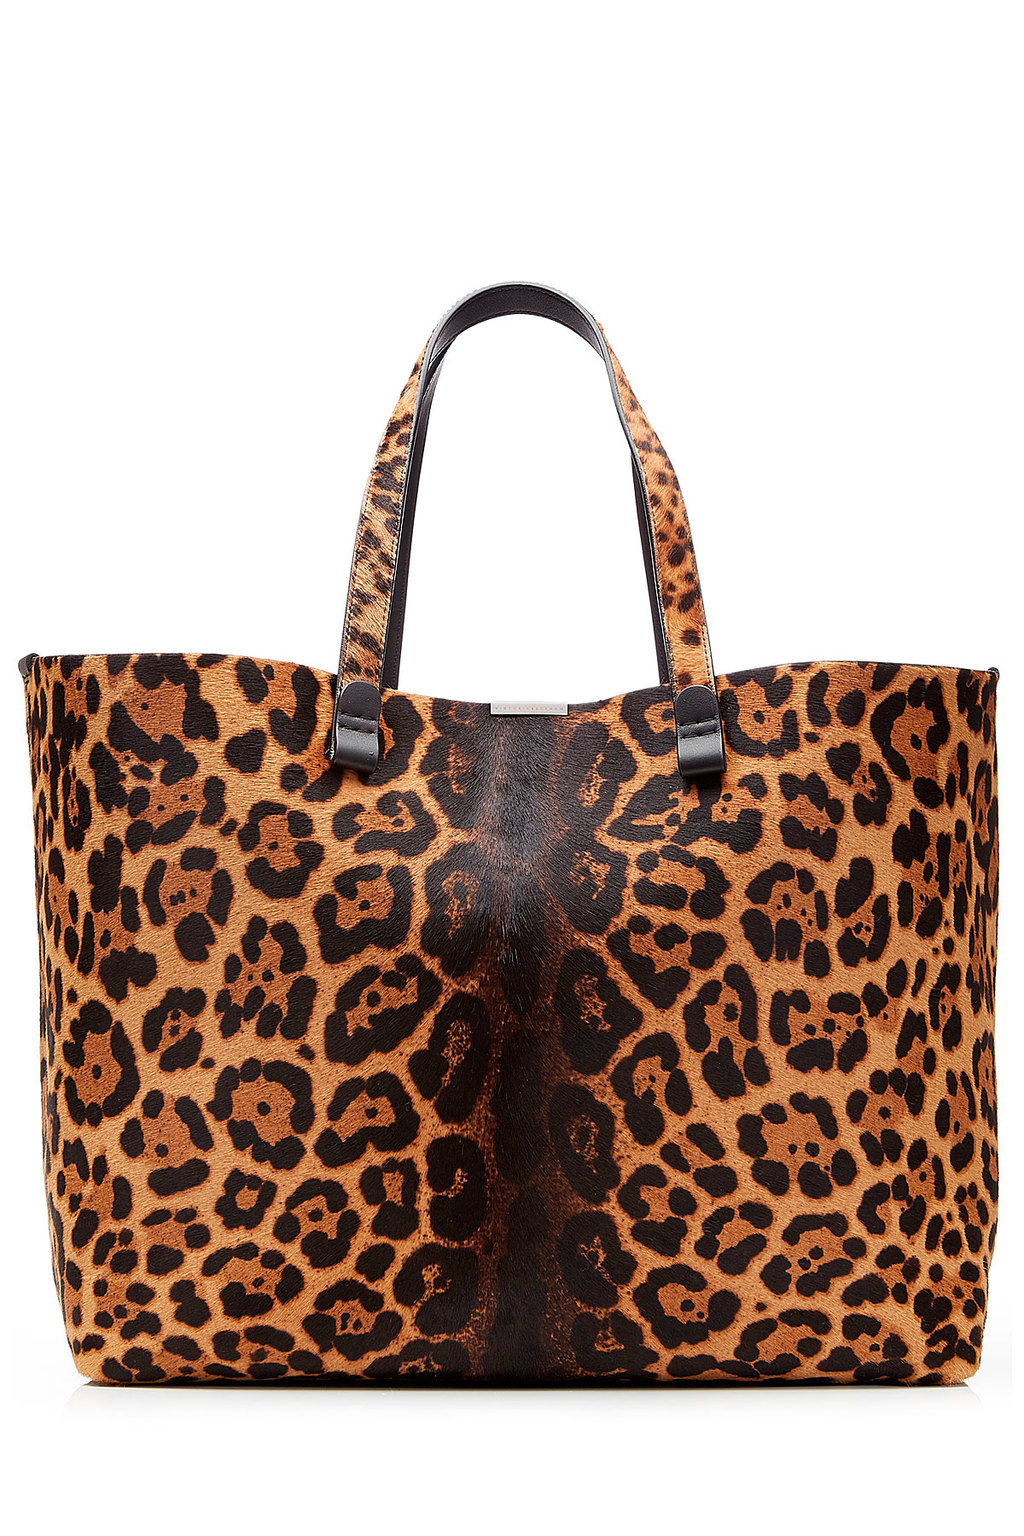 Simple Shopper Printed Calf Hair Tote Animal Prints - predominant colour: camel; secondary colour: black; occasions: casual, creative work; type of pattern: standard; style: tote; length: shoulder (tucks under arm); size: standard; pattern: animal print; finish: plain; material: pony skin; multicoloured: multicoloured; season: s/s 2016